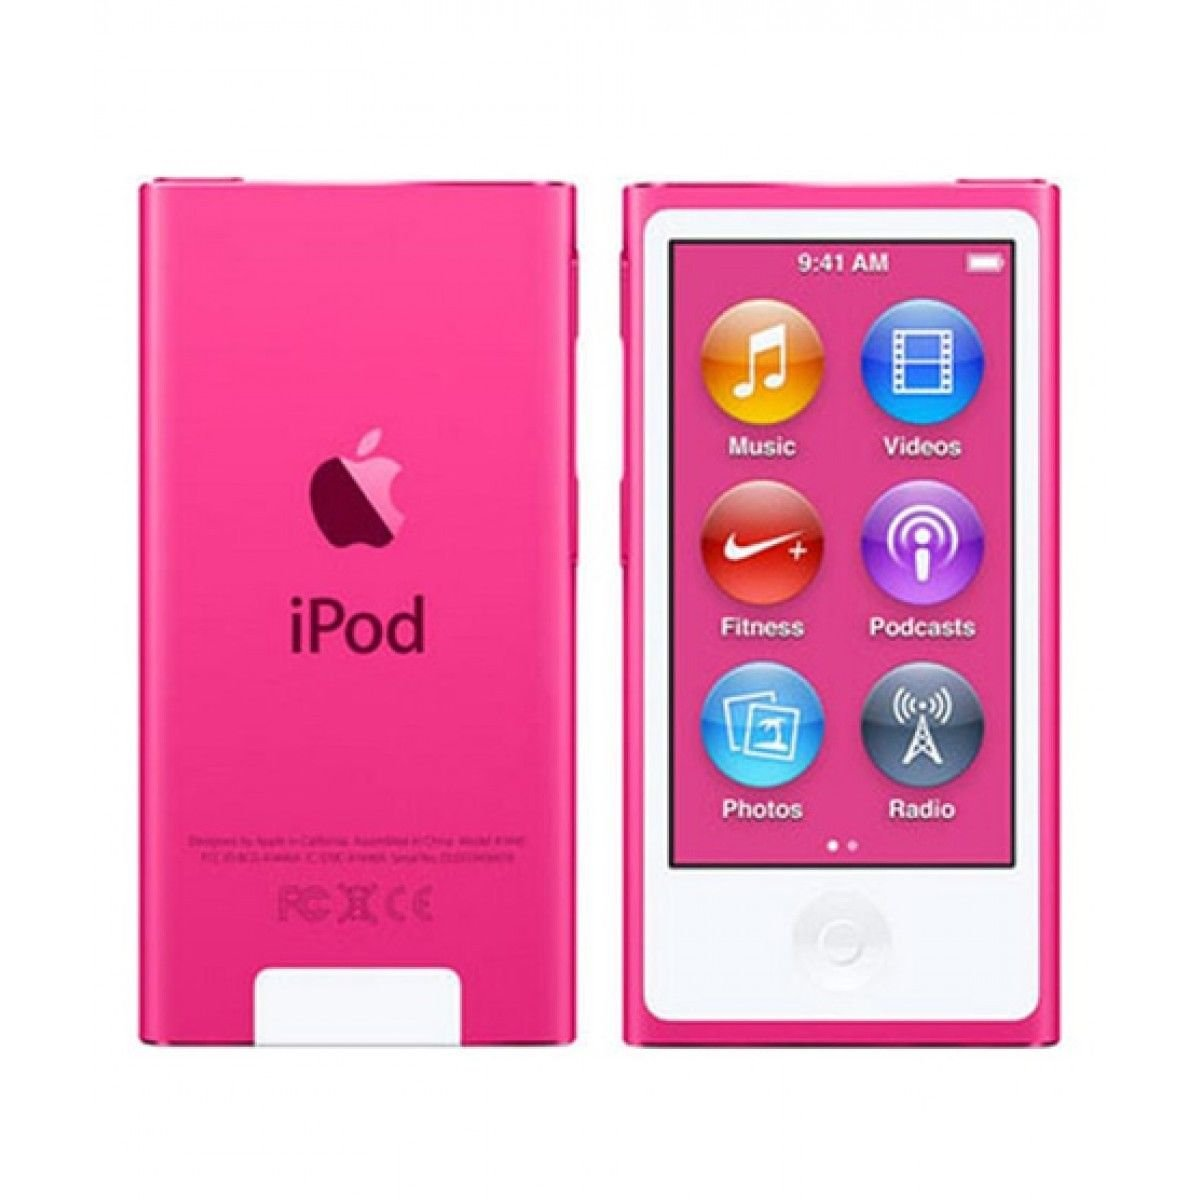 Amazon.com: Apple iPod Nano 7th Generation 16GB Pink 3A655V/A: Electronics